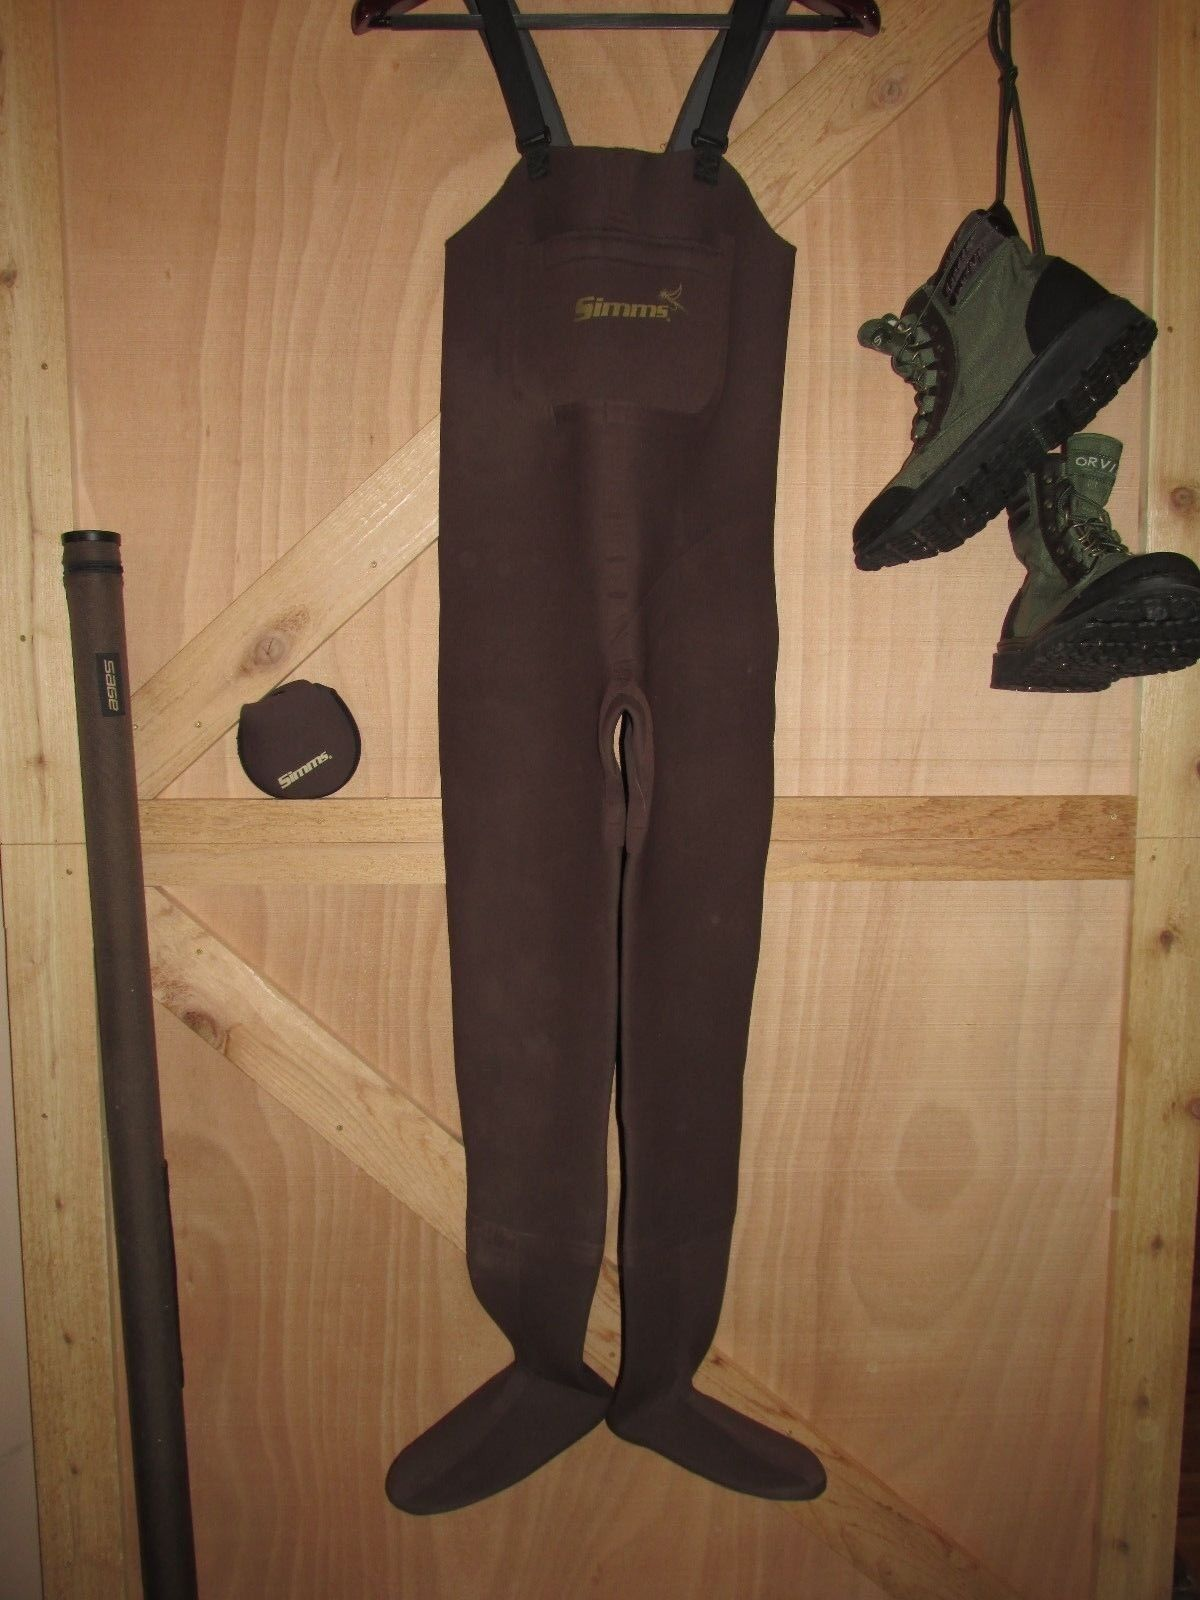 Simms Neopren Form Fuß Wader Fliege Fischen Frauen XS Made in USA